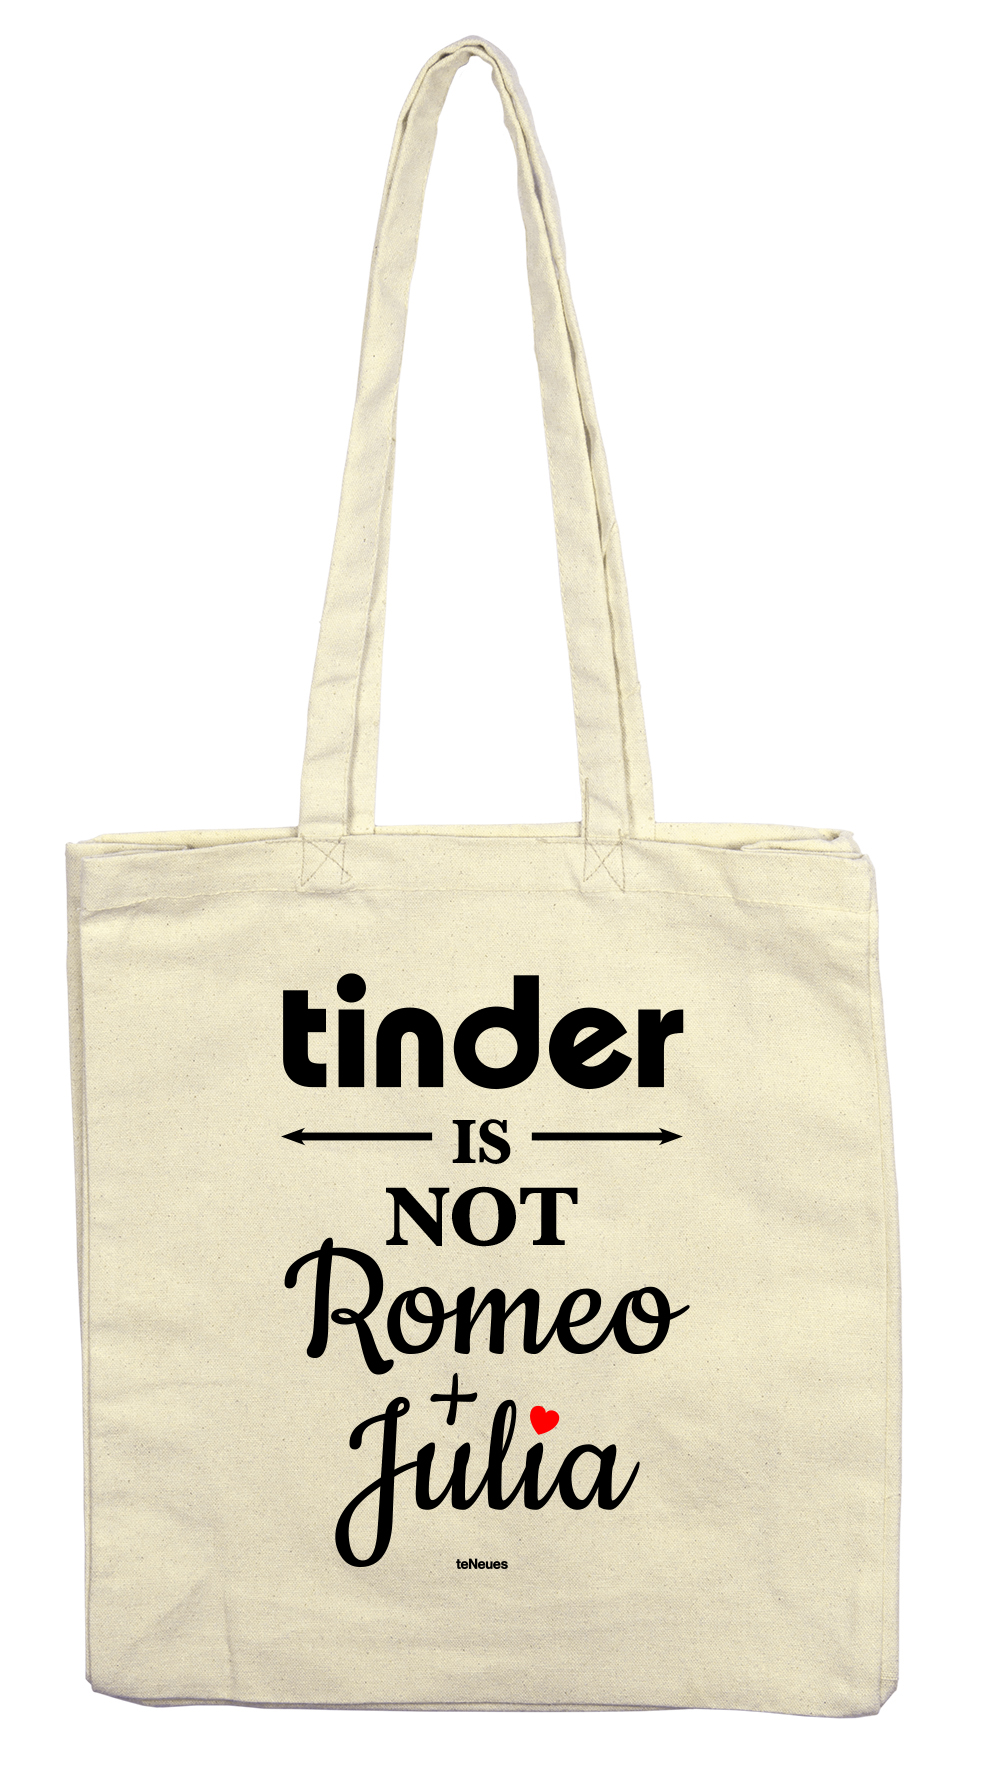 Stofftasche tinder is NOT Romeo +Julia